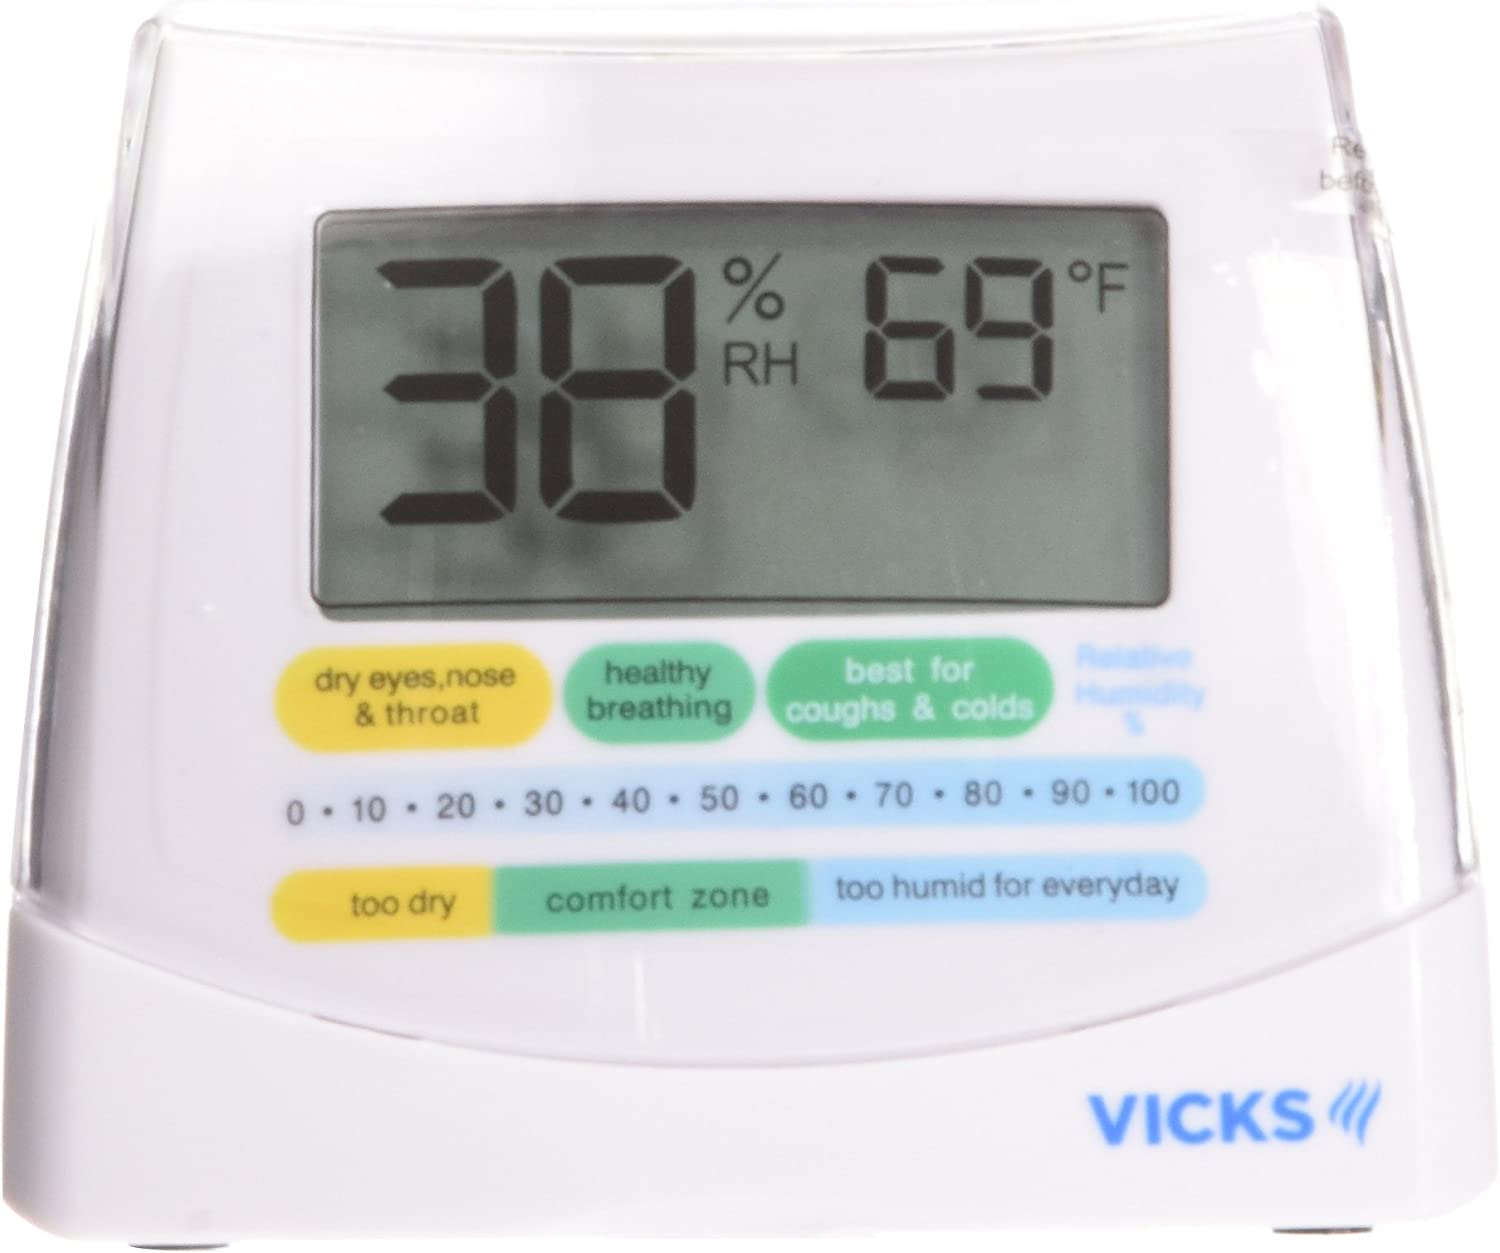 B0000TN7NS Vicks Humidity Monitor Helps You Keep Moisture at Ideal Levels 71BJl5i5rQL